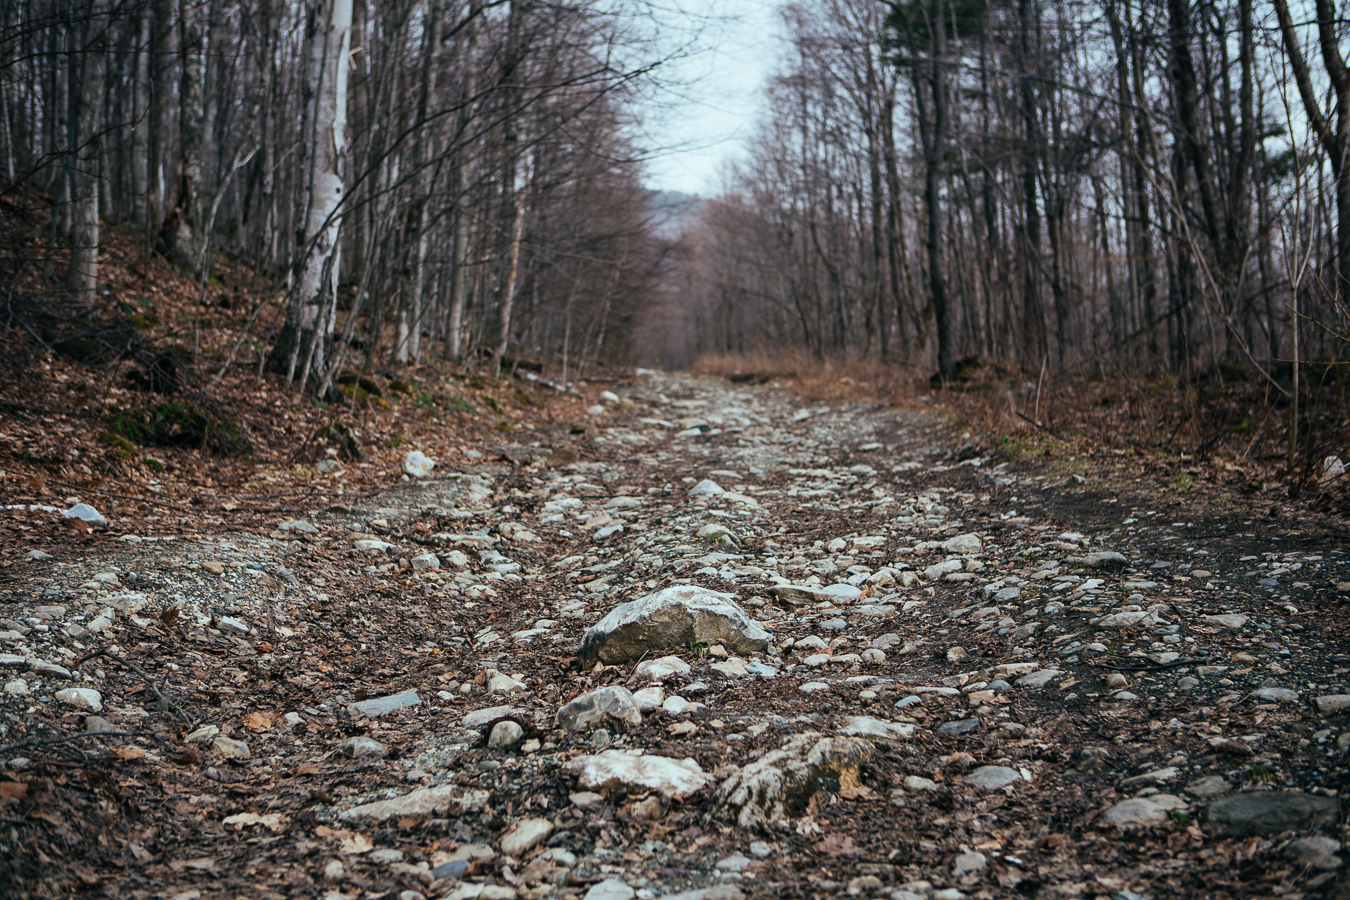 In the backwoods of the Dorset area is an abandoned rock quarry. I tried driving back to it, but around this corner was a muddy road that my camper van couldn't climb. I hoofed it from here.